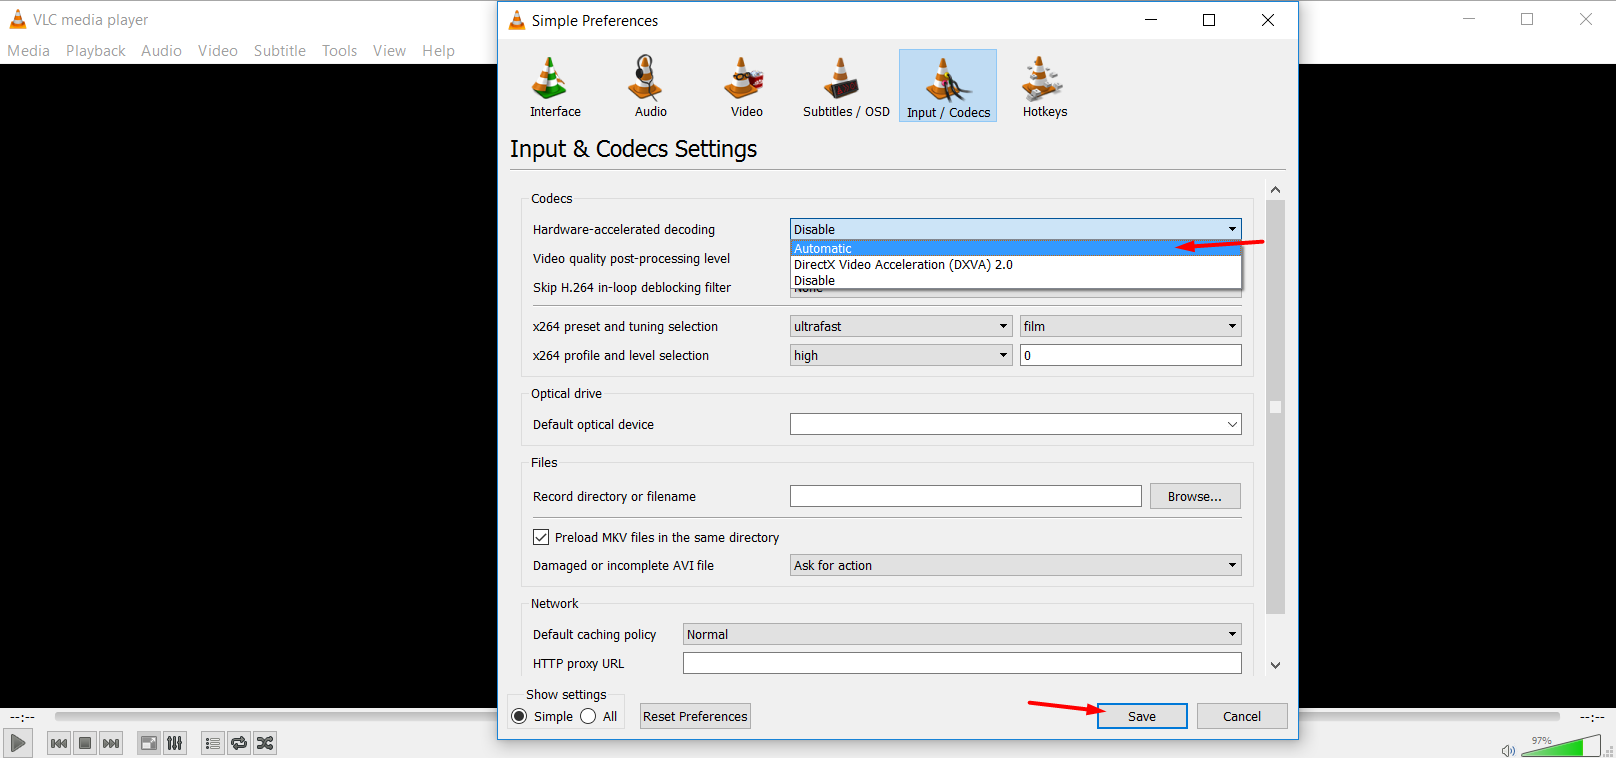 Save battery life with VLC 2